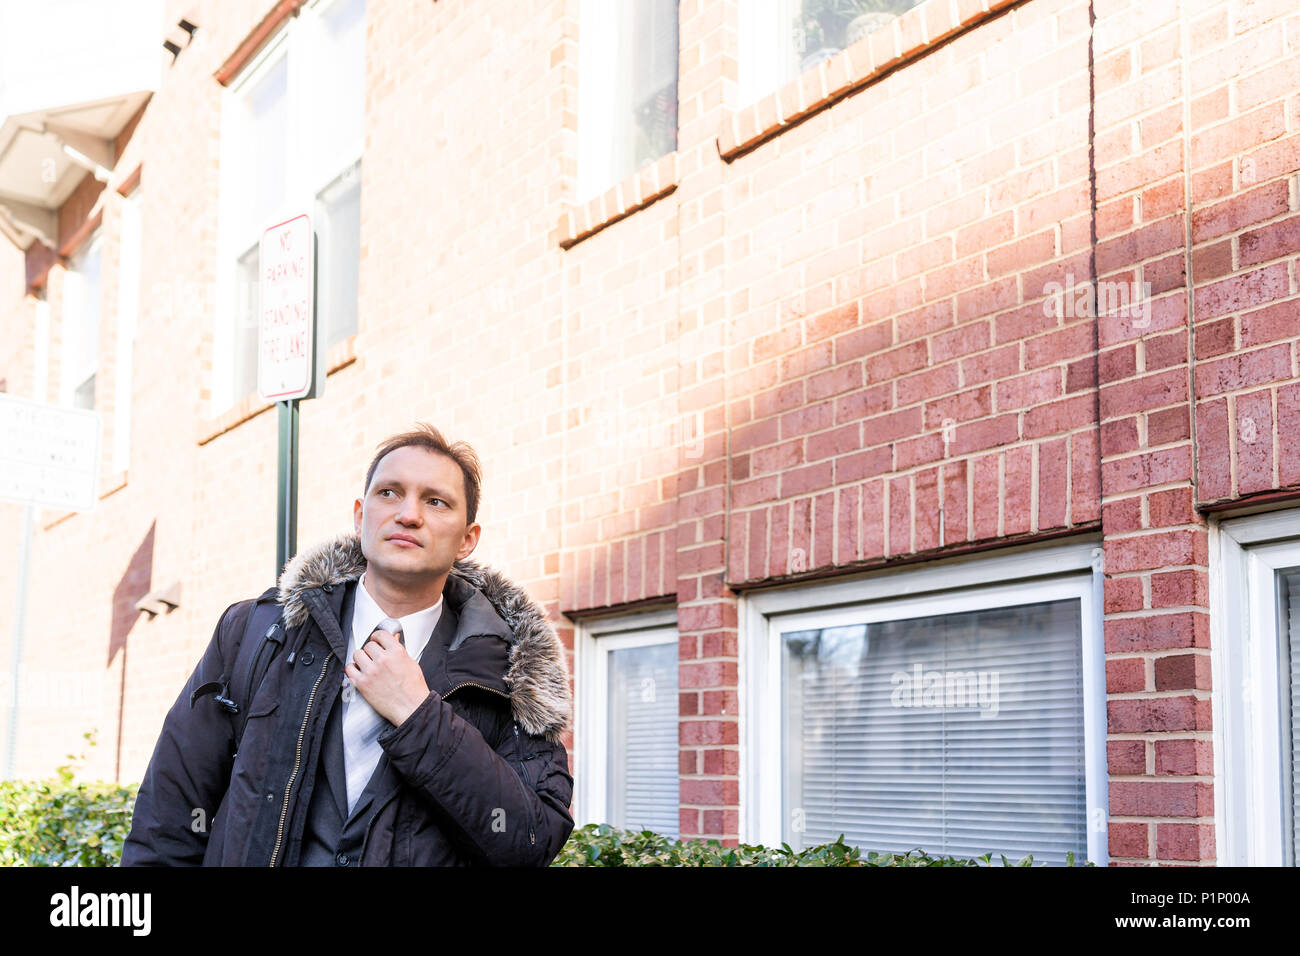 Young serious businessman face standing in front of brick wall, fixing tie, in suit and tie on interview break outside - Stock Image